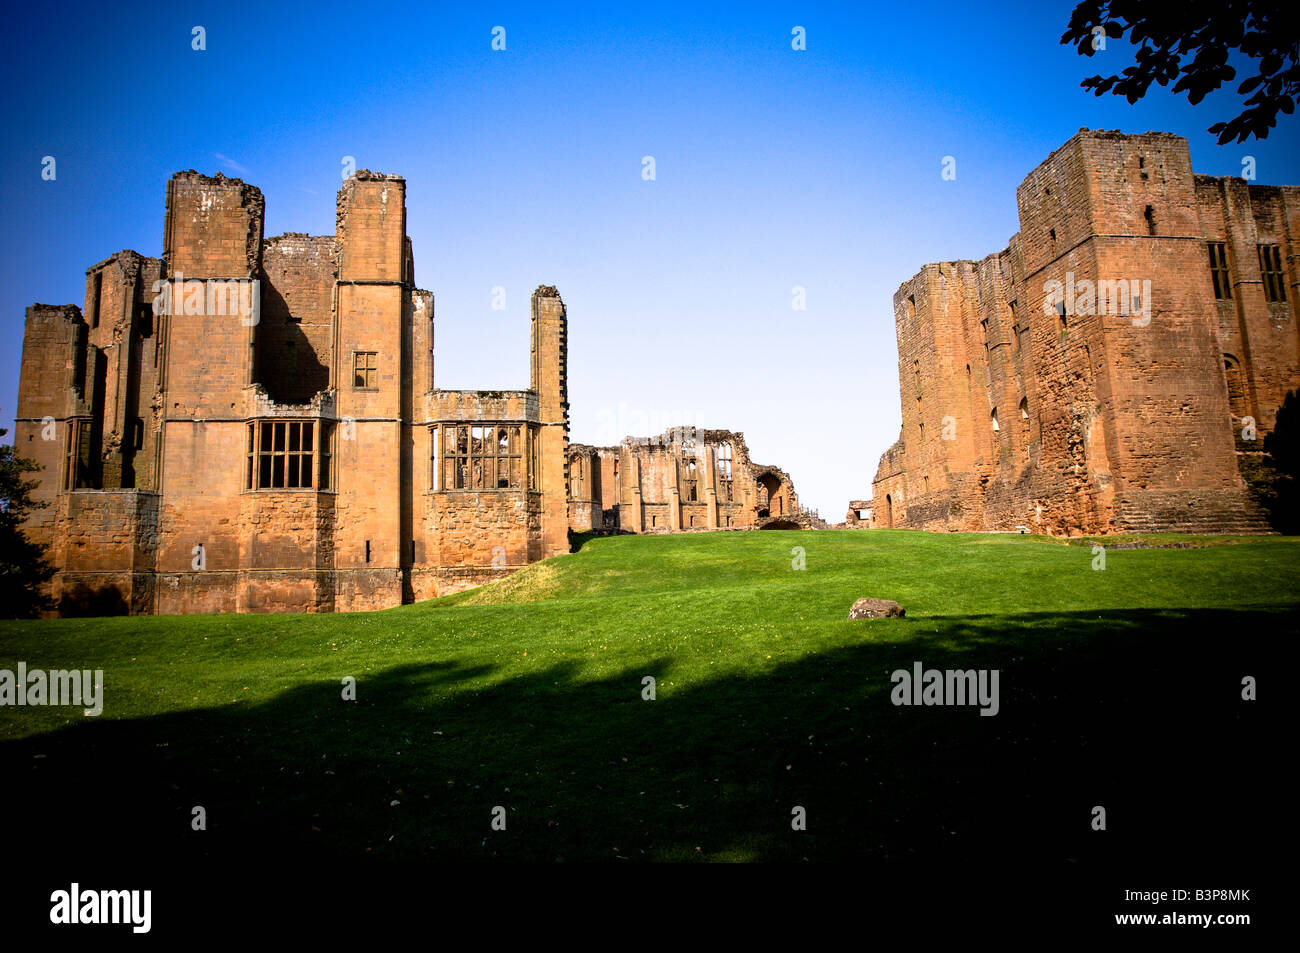 Kenilworth Castle on a summer's day. Photo shows Leicester's Building (left) and The Keep (right) - Stock Image